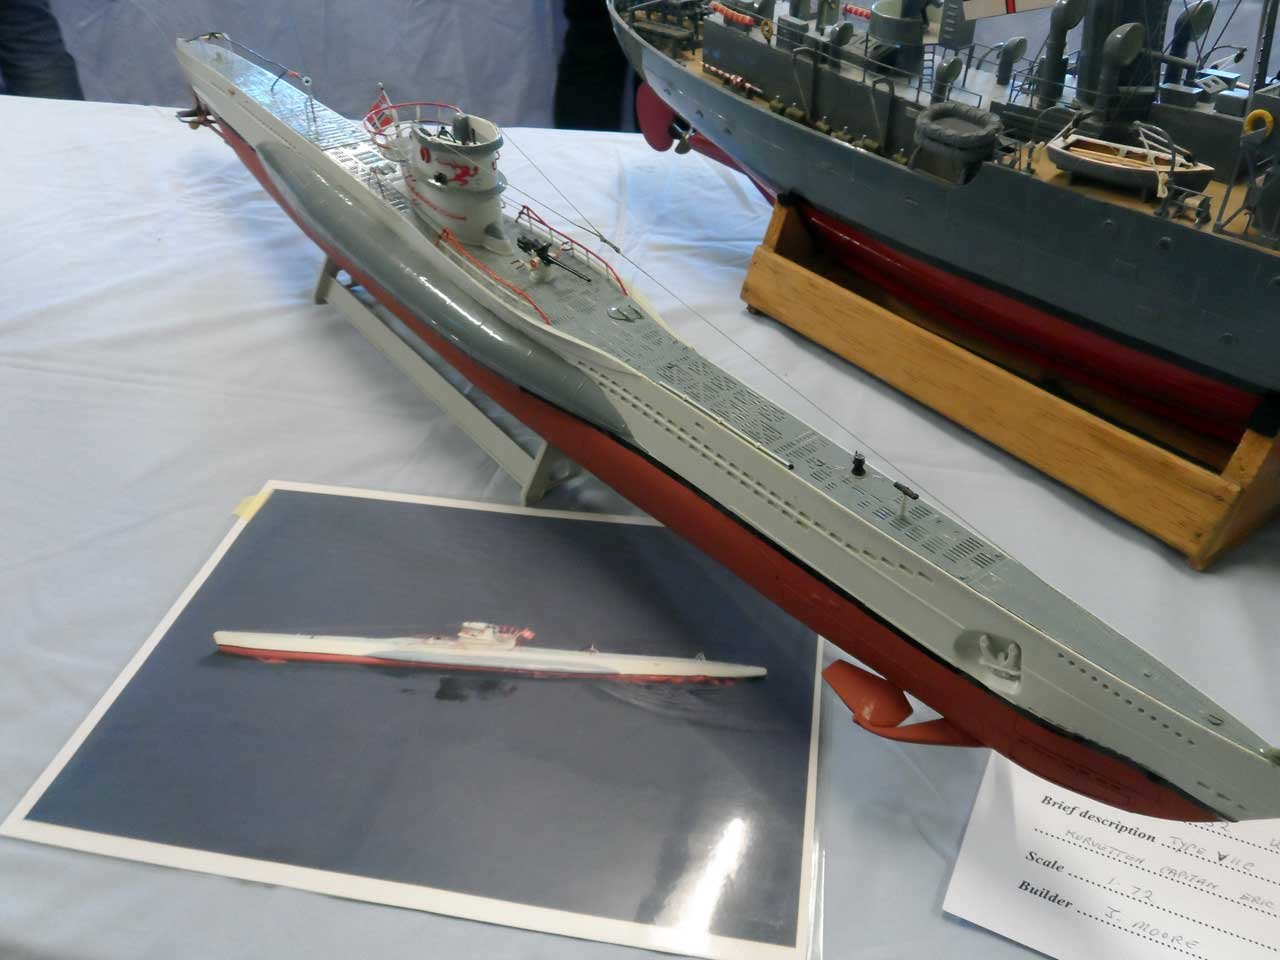 Photo: U552 - U-boat - Type V11C - Model Boat Show 2015